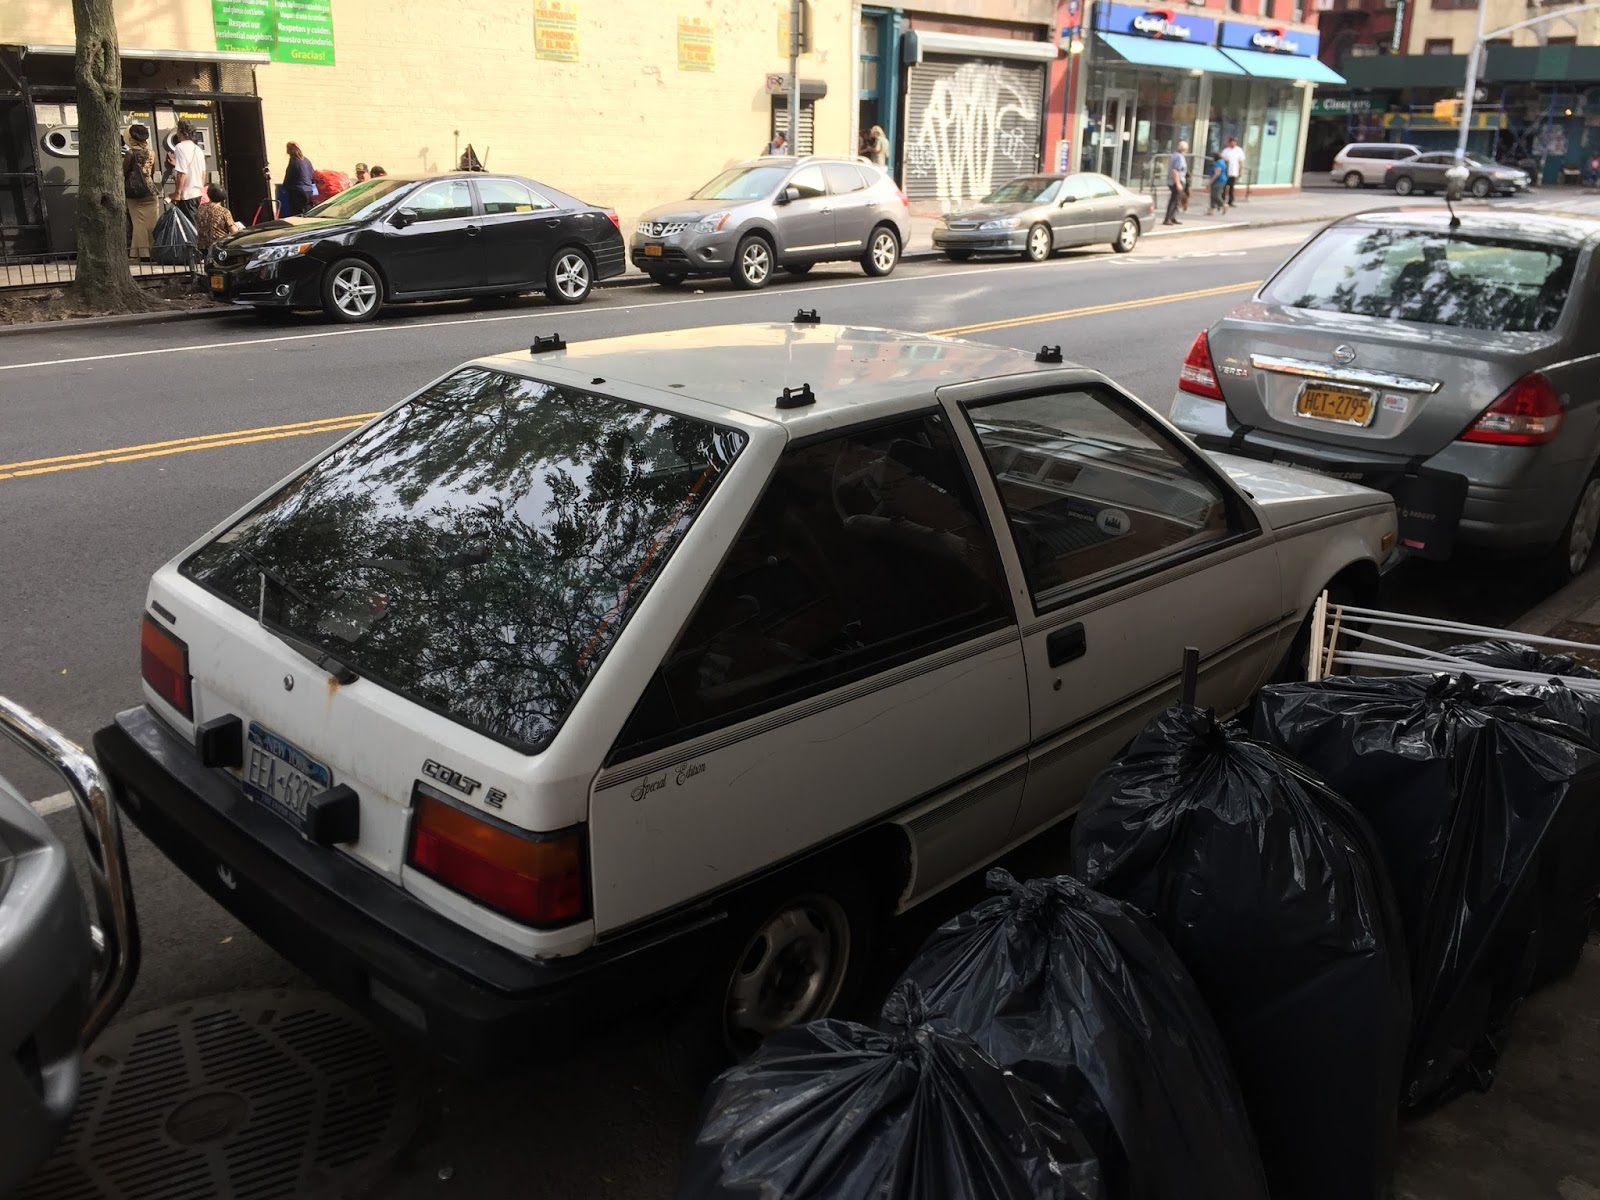 NYC Hoopties - Whips Rides Buckets Junkers and Clunkers